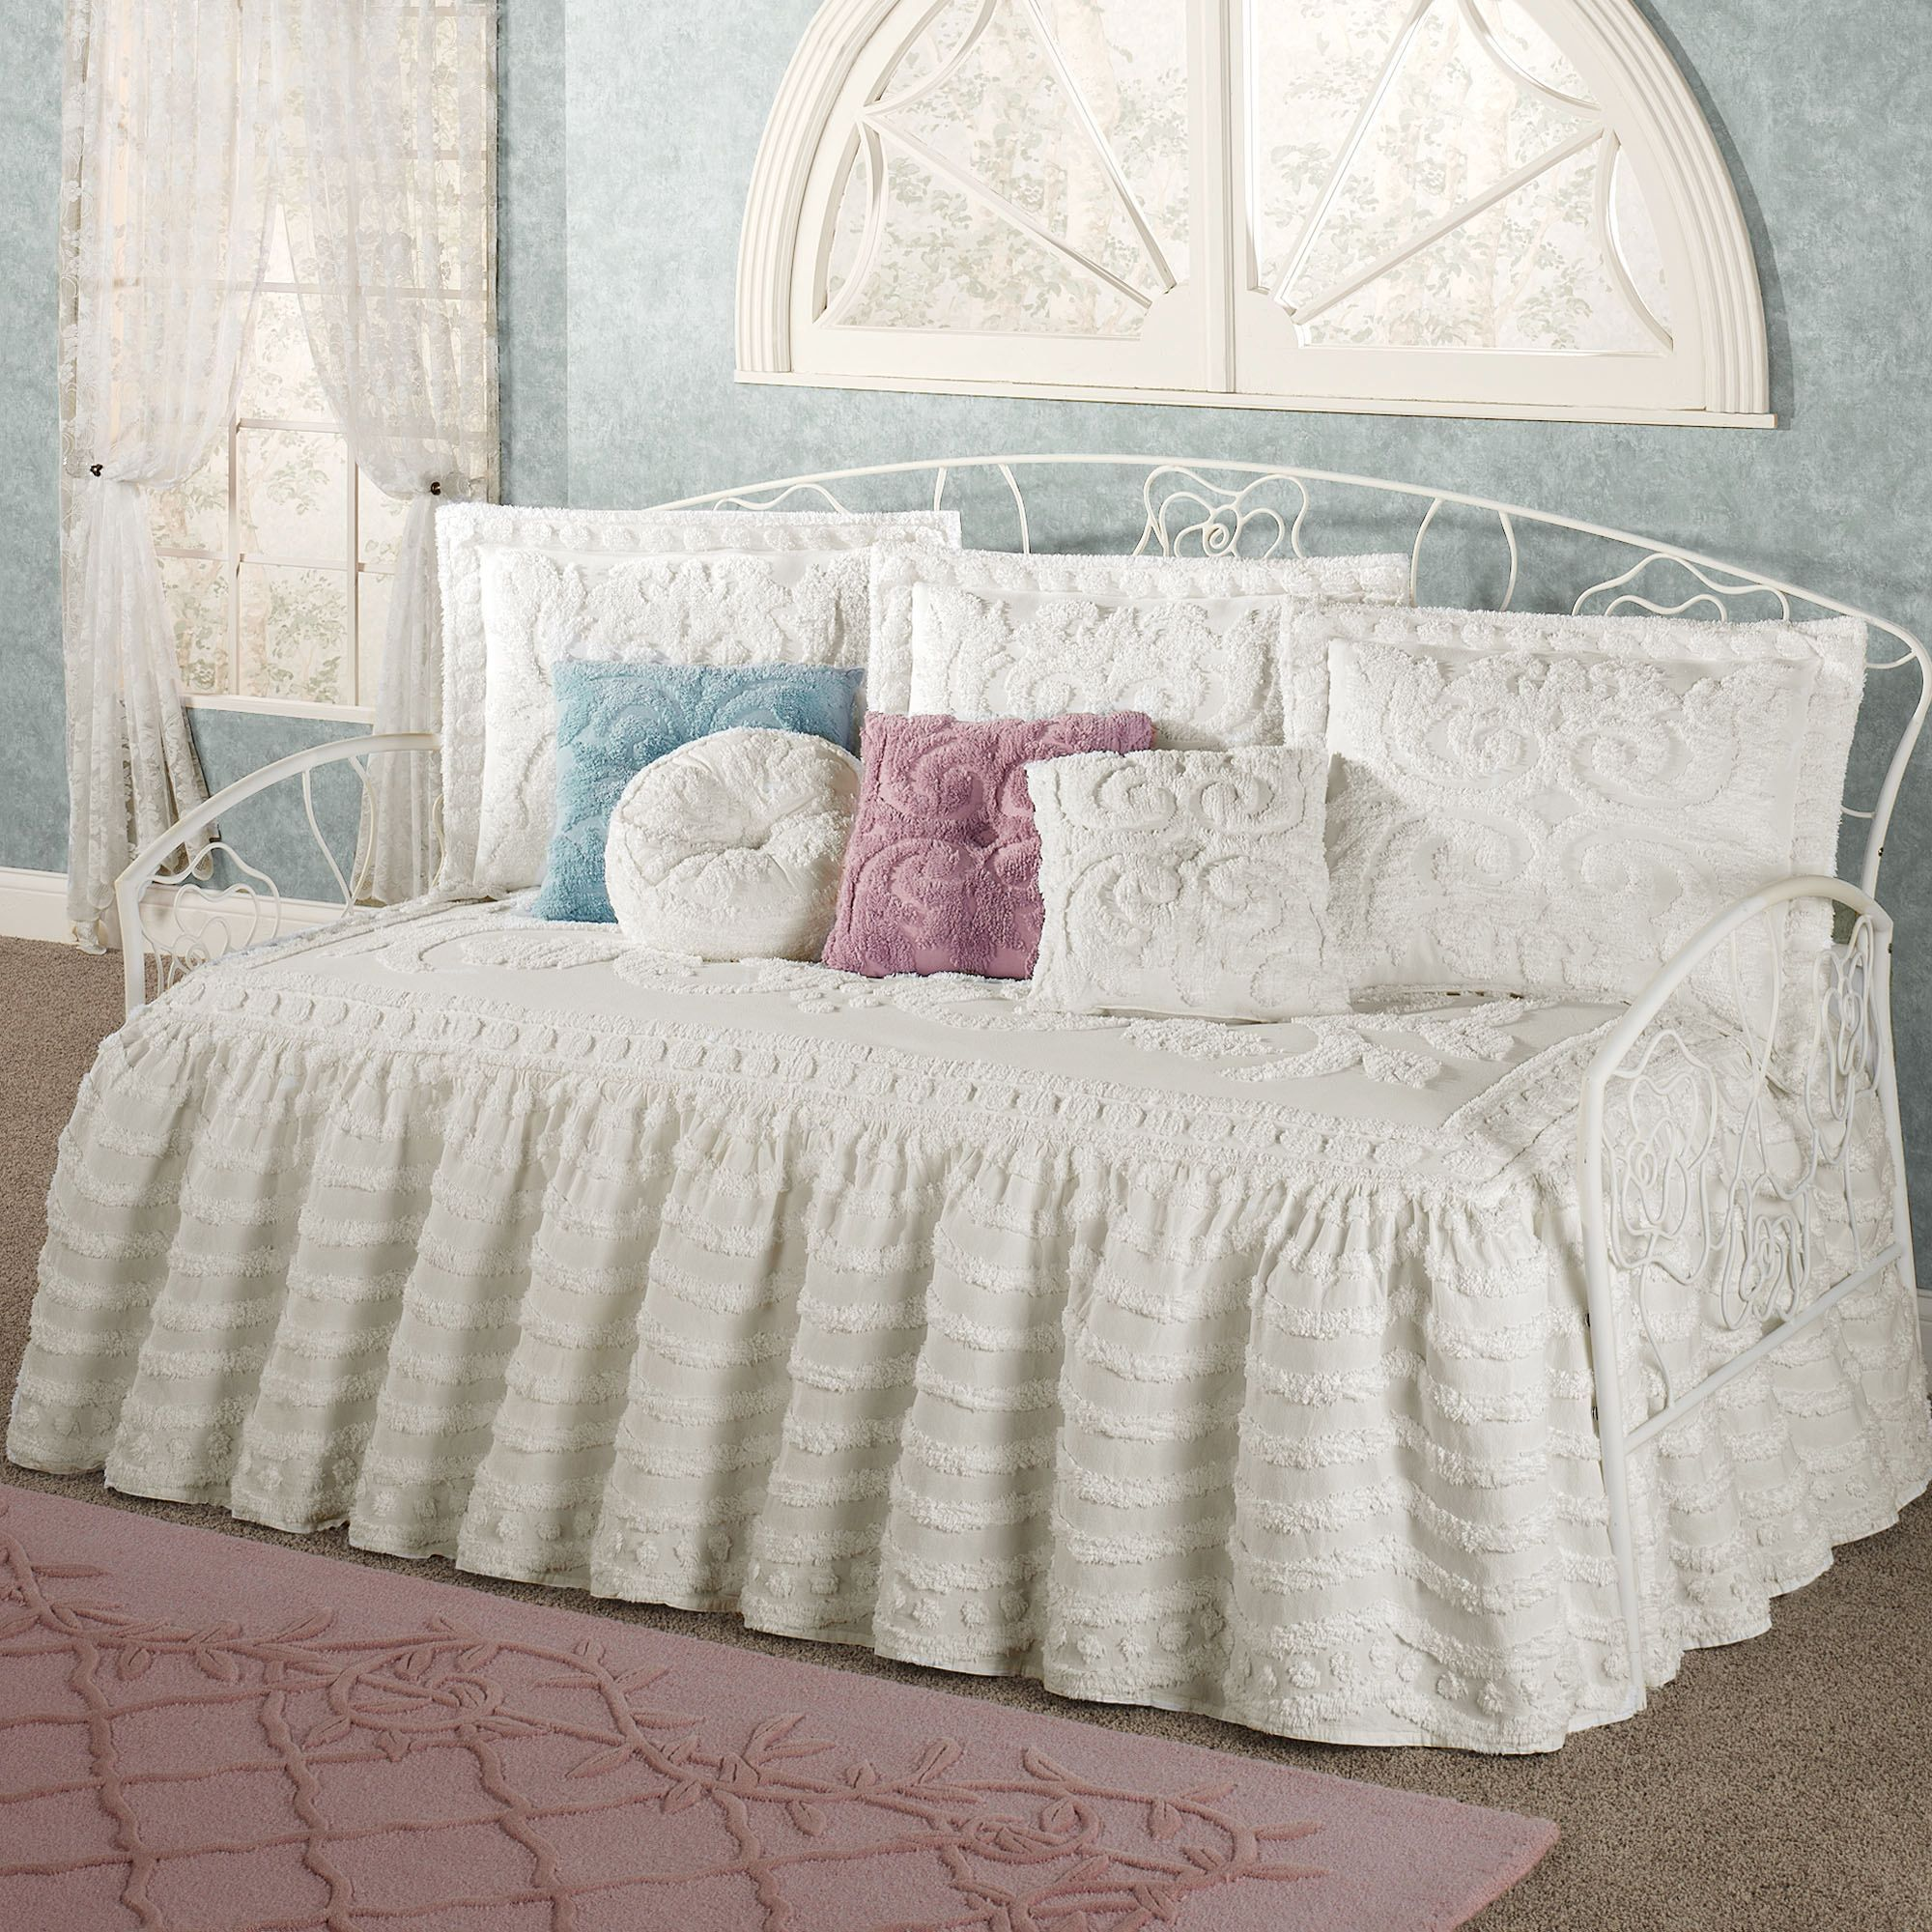 Interesting Ruffled Daybed Bedding Set With White Cushions